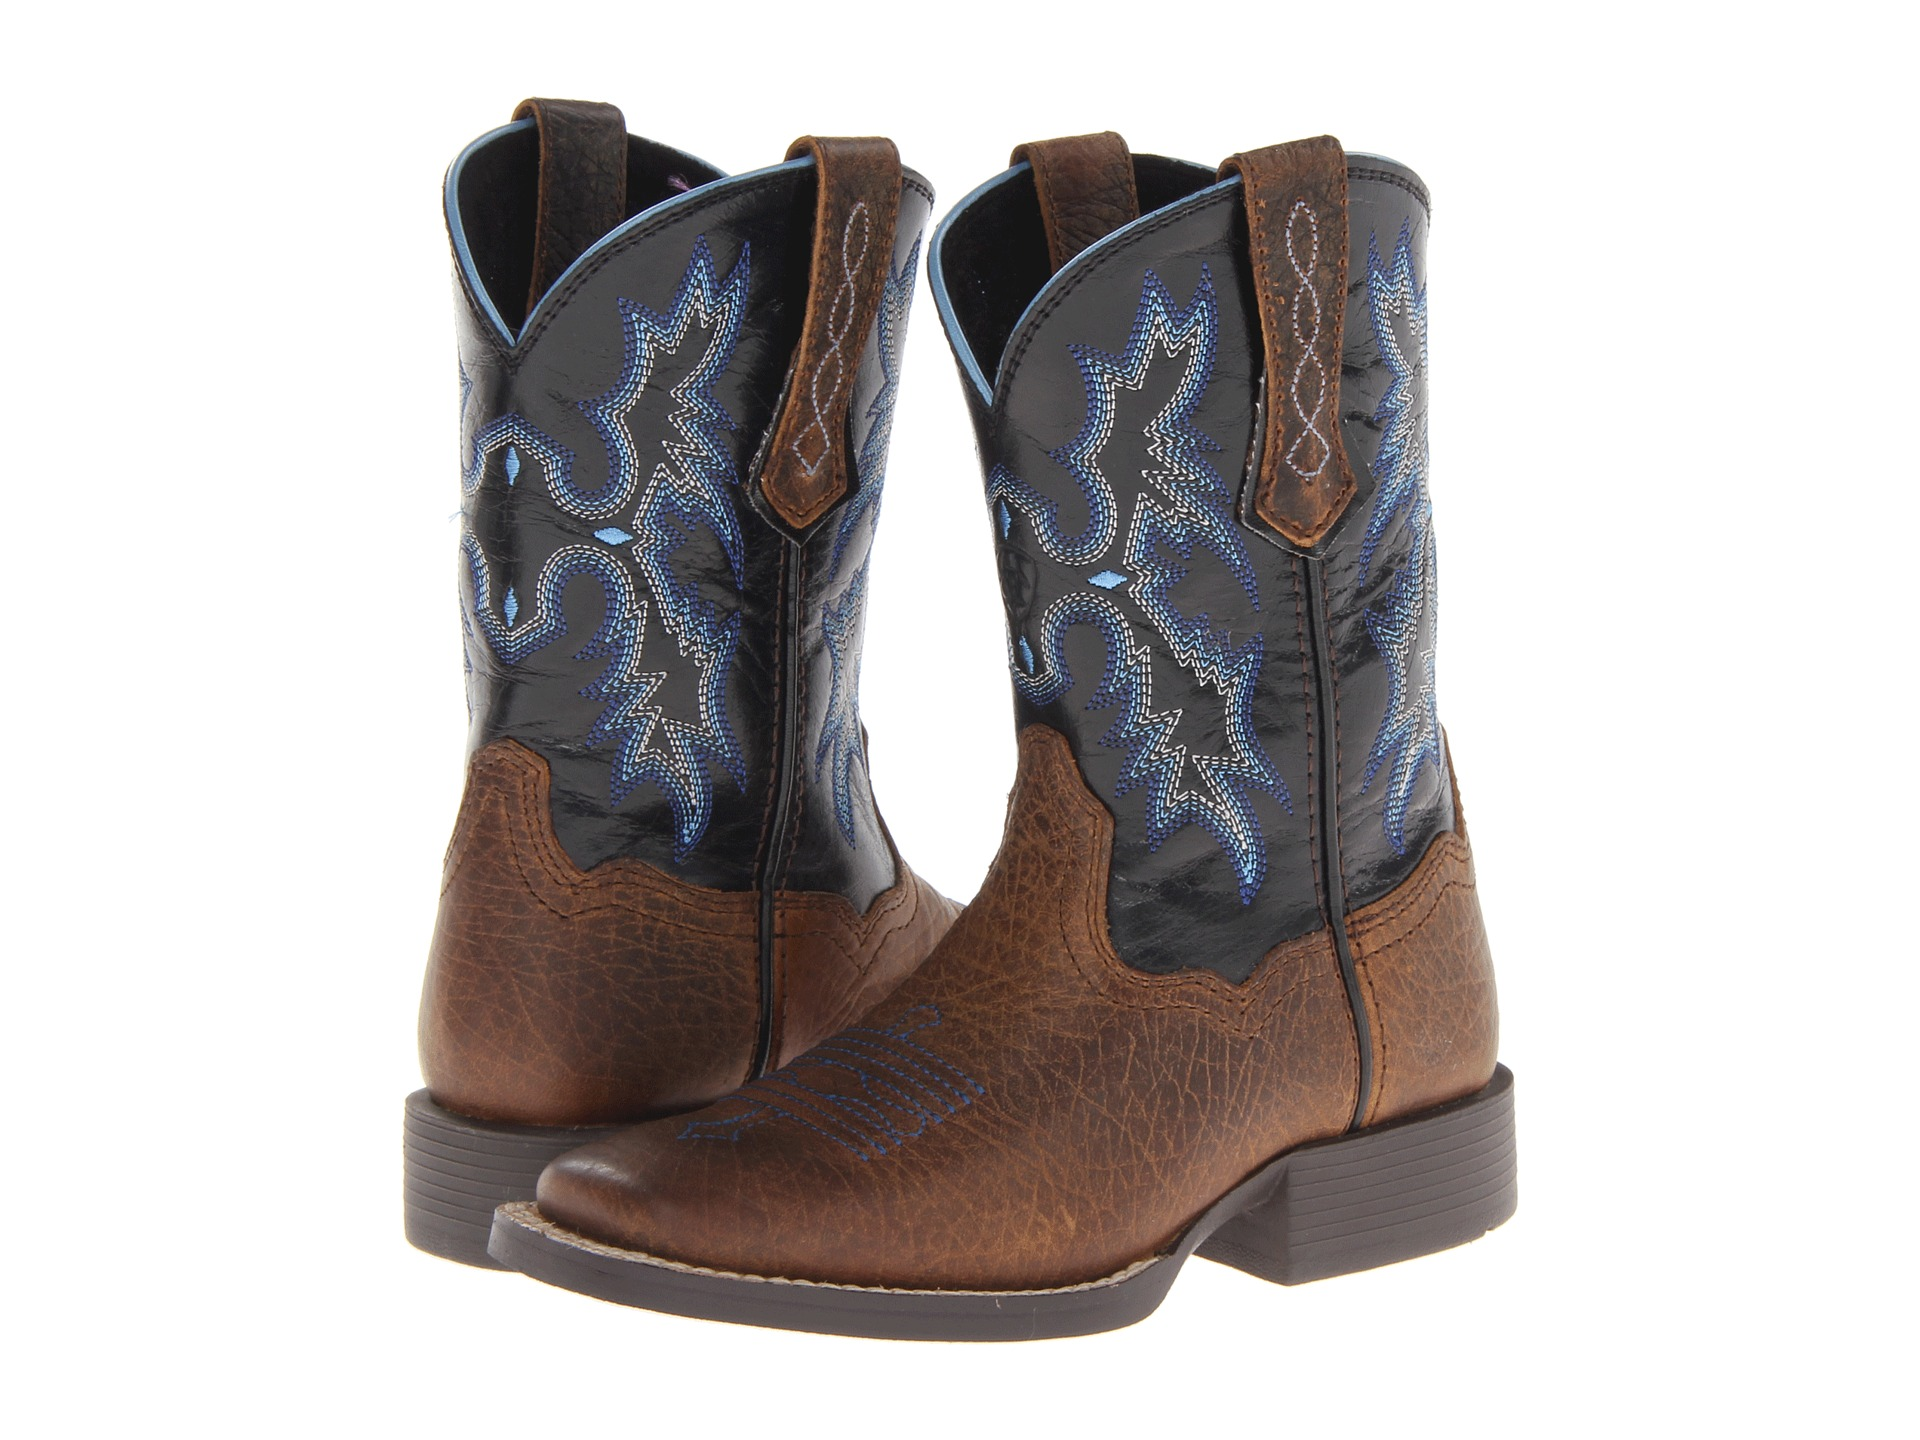 Ariat, Shoes, Boys | Shipped Free at Zappos